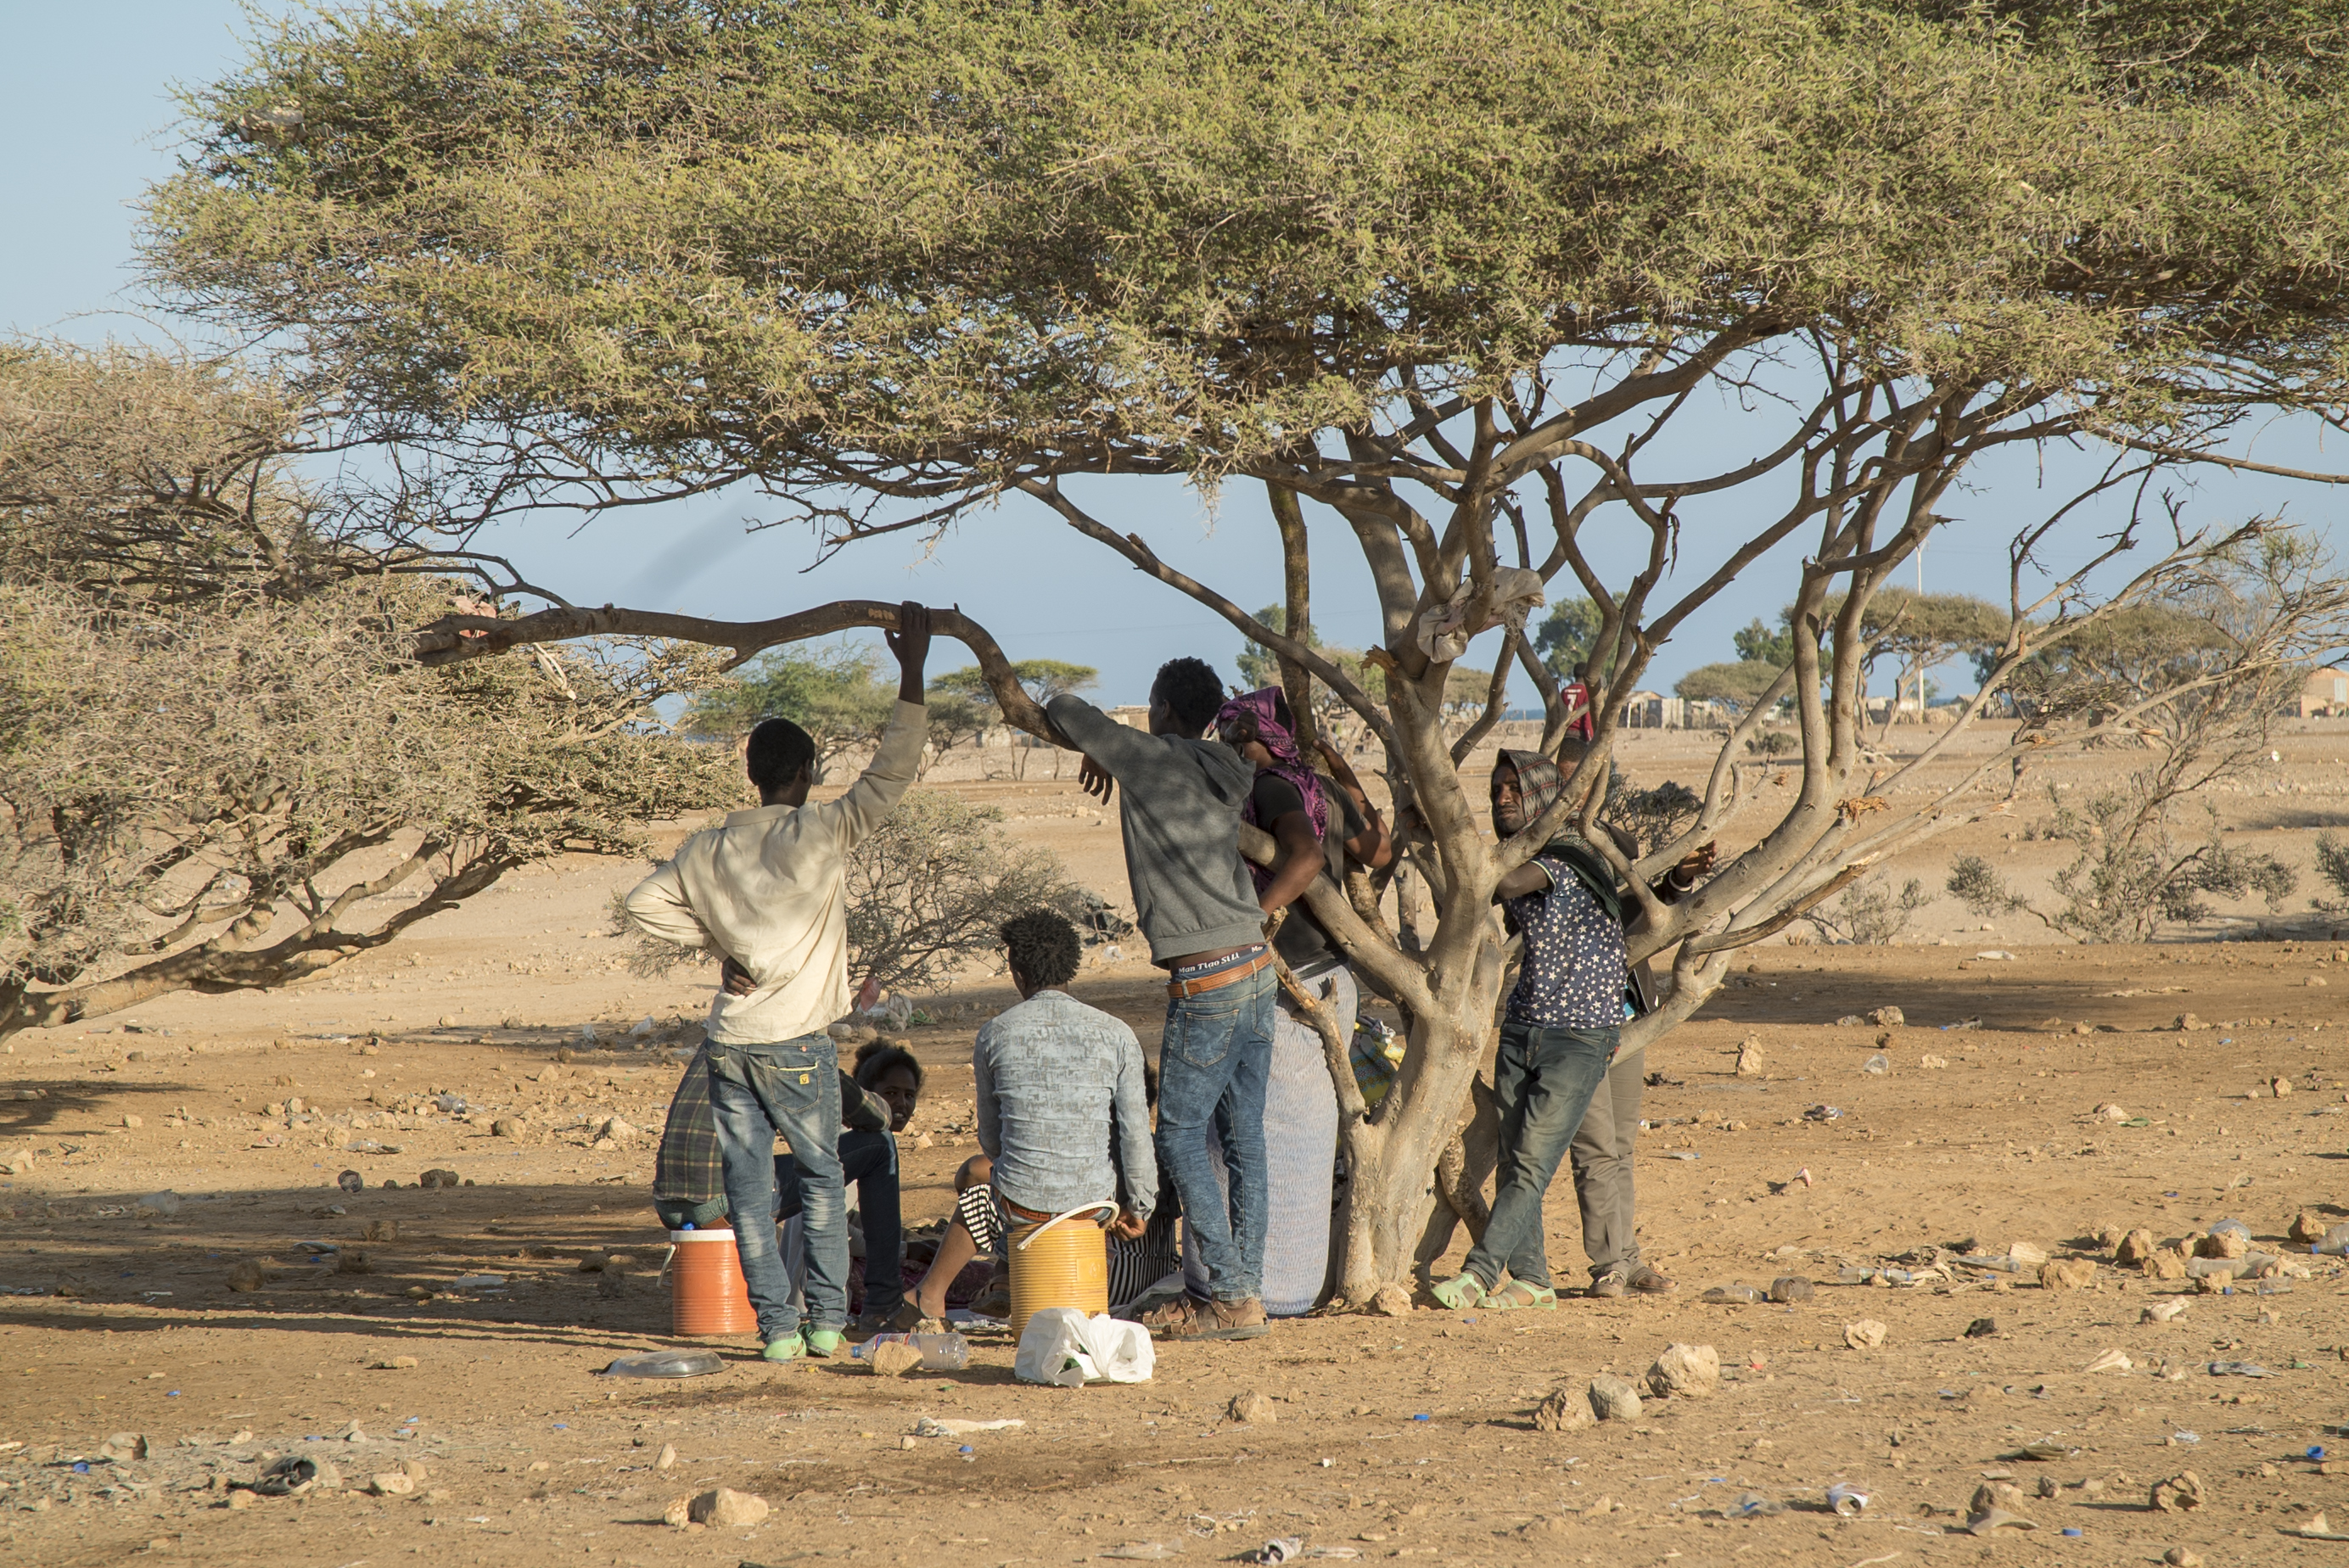 A group of men stand, facing away, in the shade of a tree in an arid landscape outside a settlement